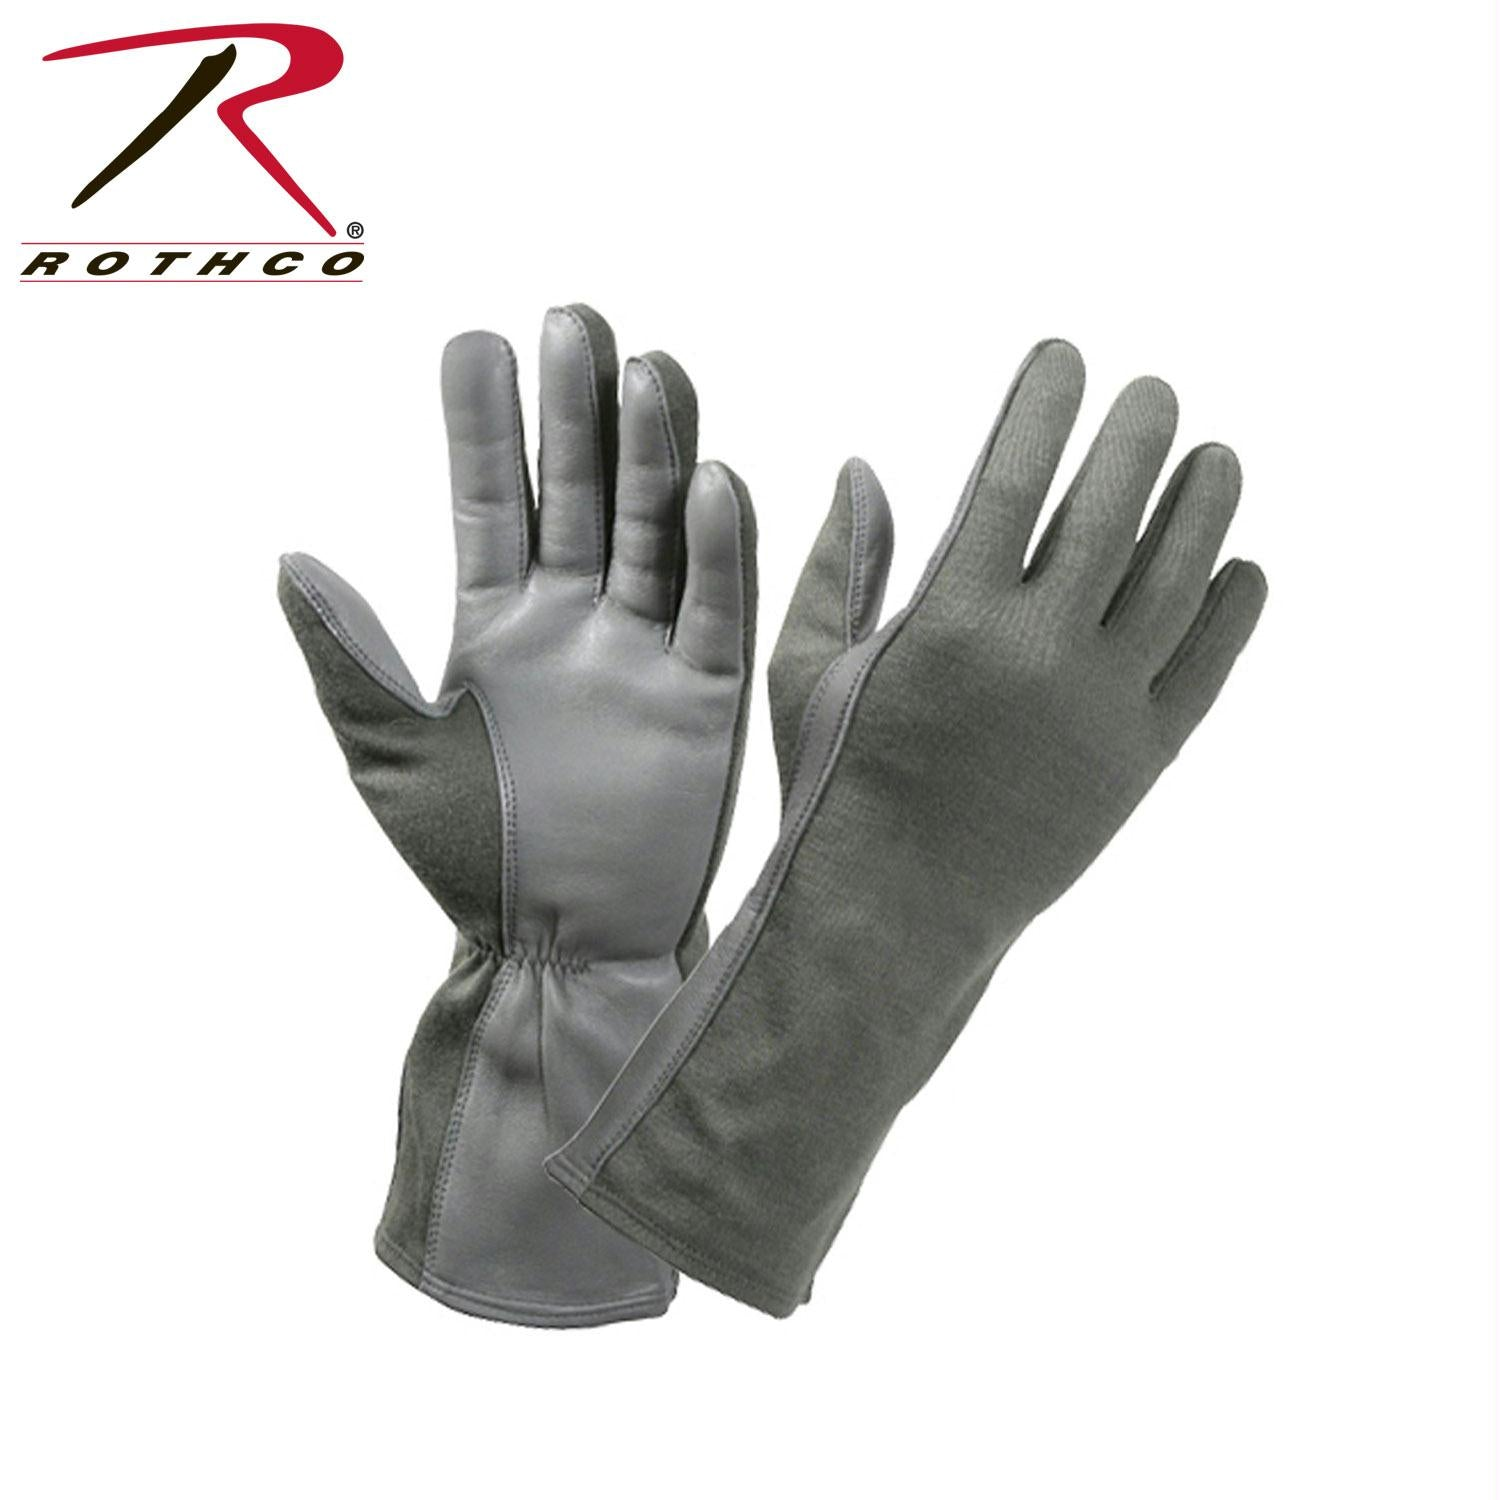 Rothco G.I. Type Flame & Heat Resistant Flight Gloves - Foliage Green / 8